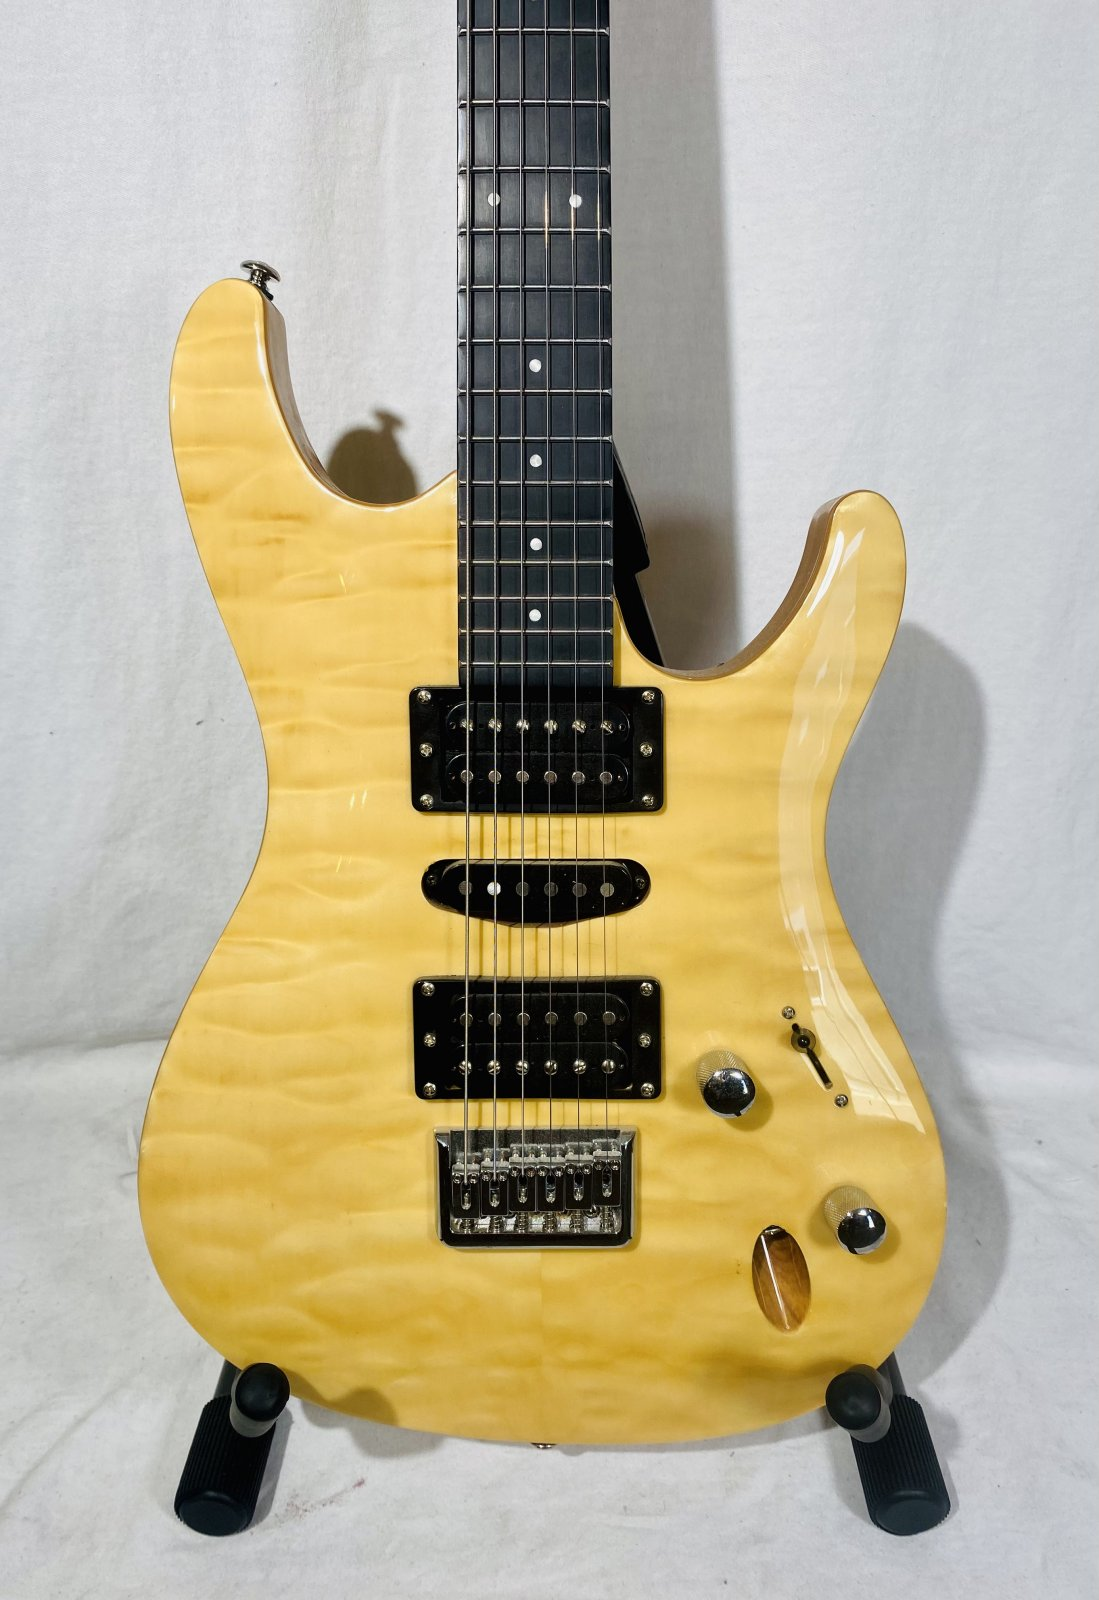 FRETLIGHT ELECTRIC GUITAR W CASE, USB CABLES, FOOTSWITCH